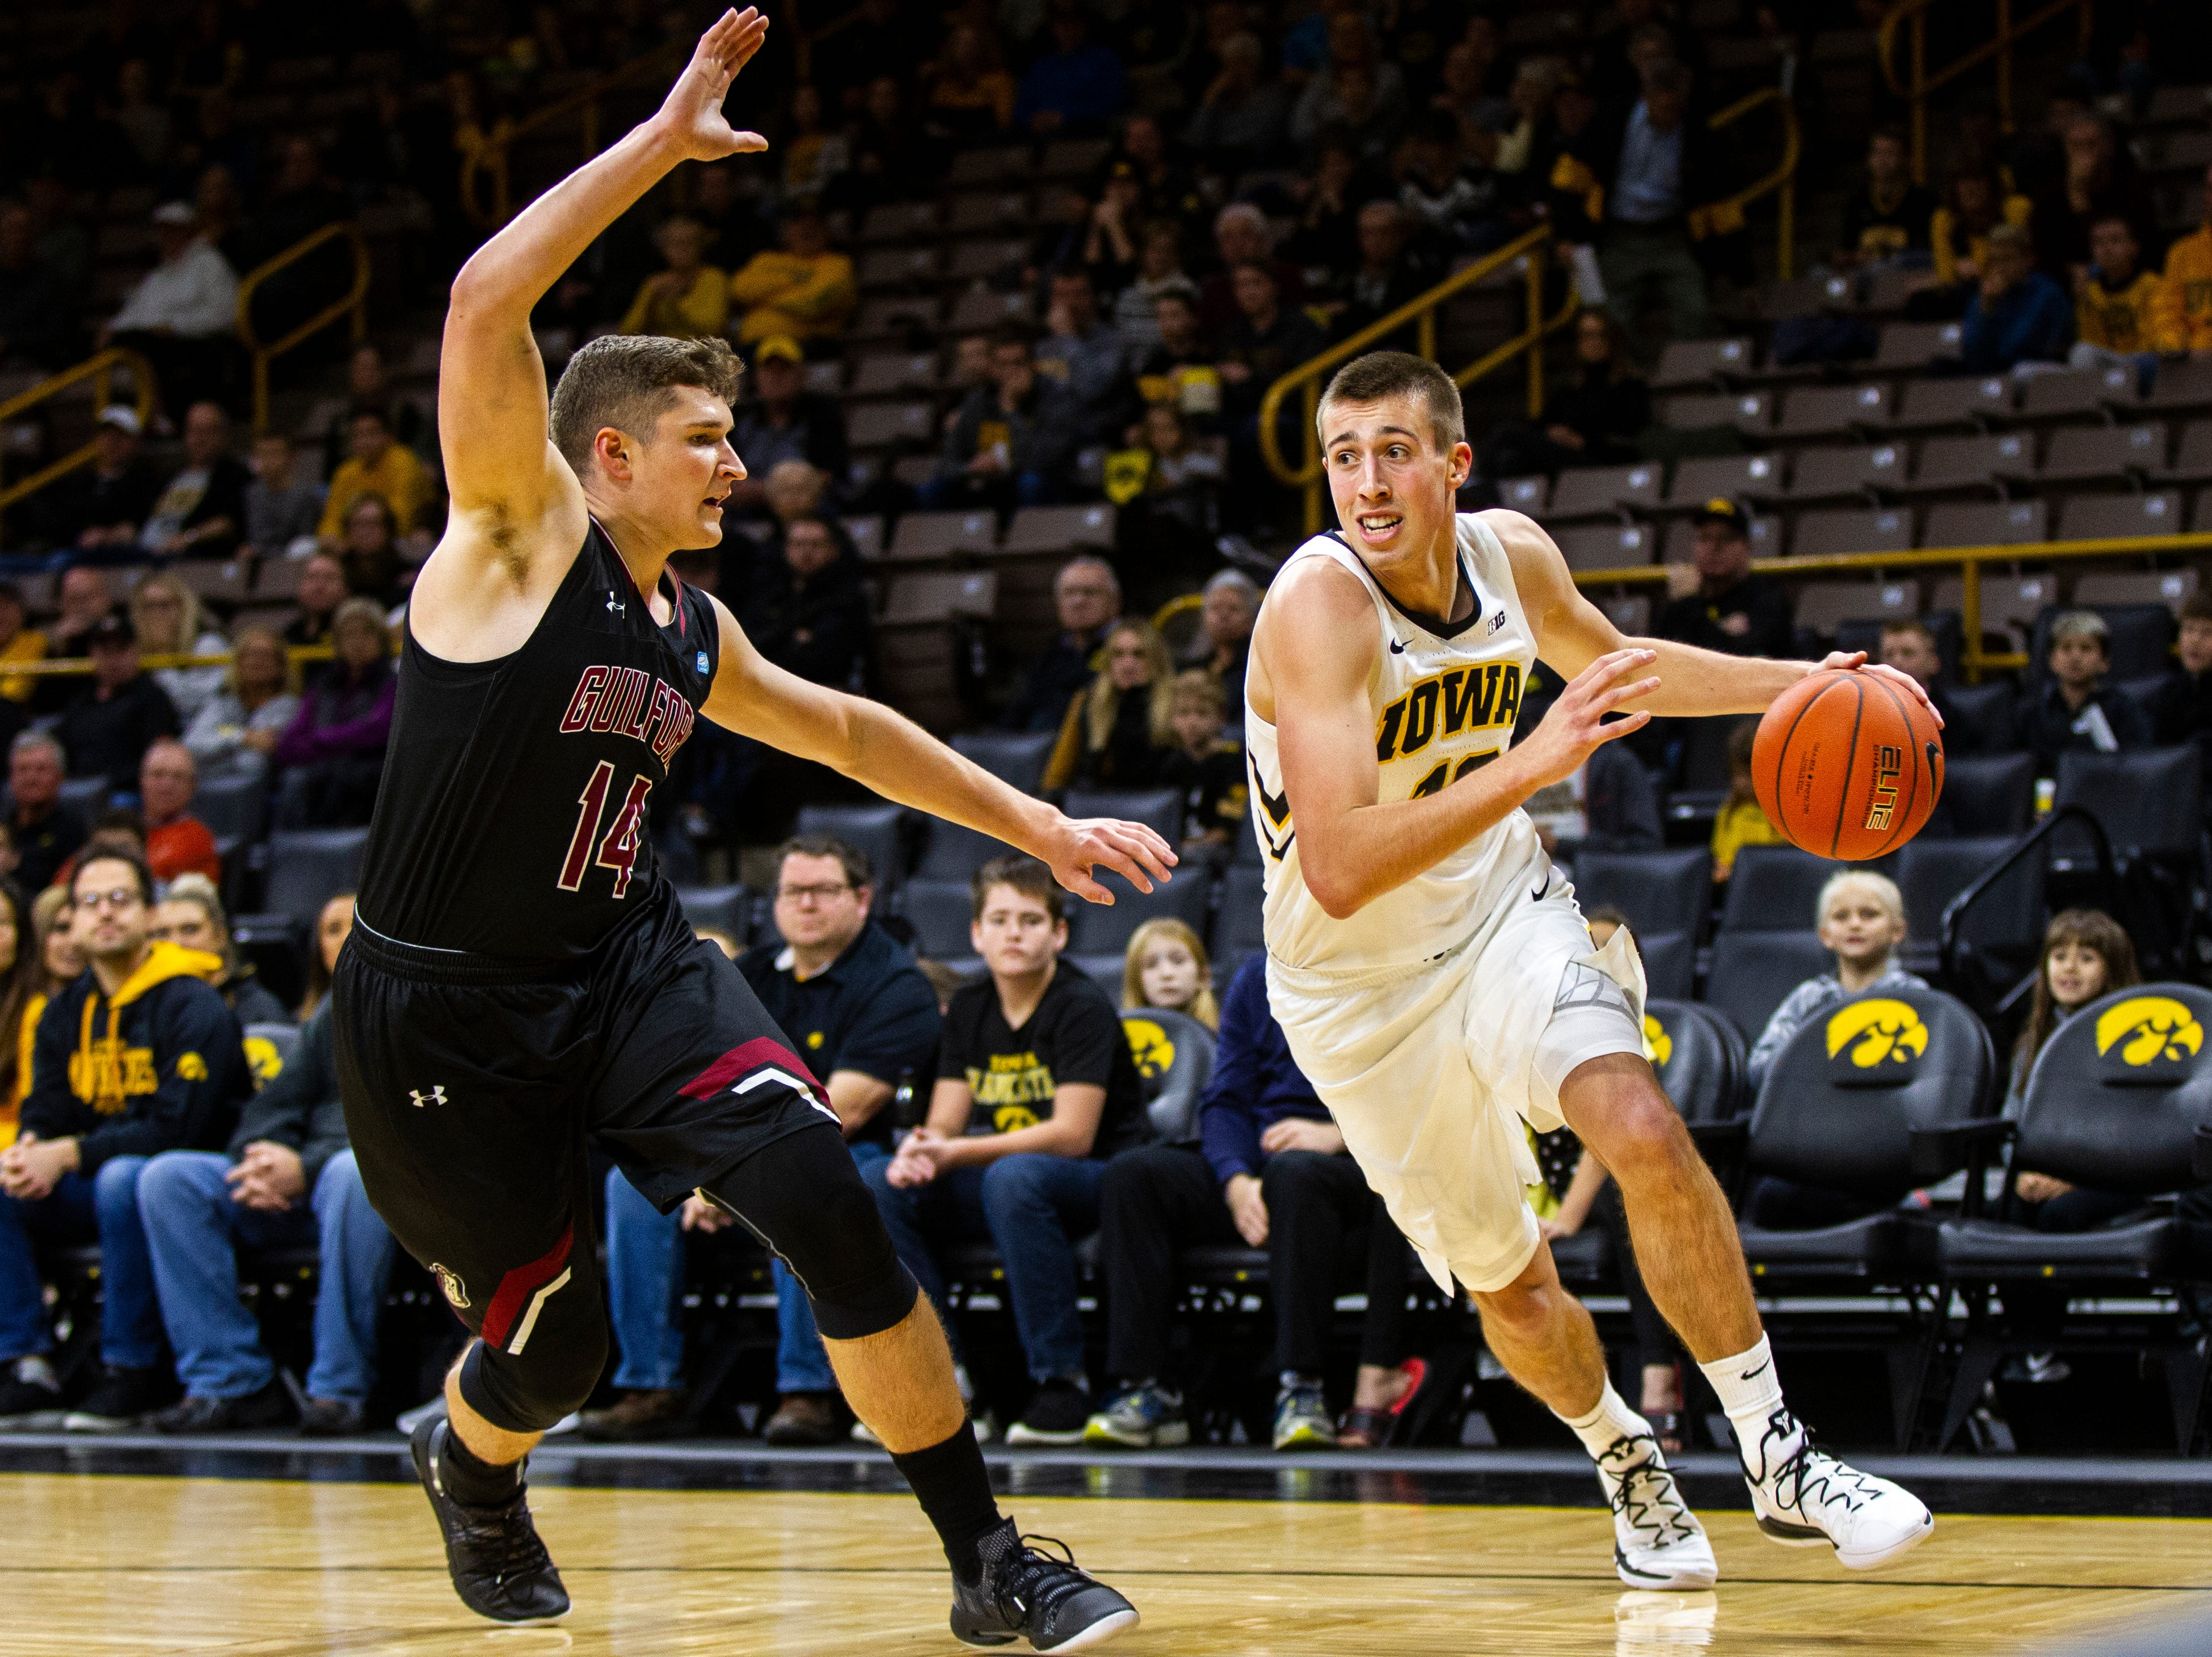 Iowa guard Joe Wieskamp (10) drives to the hoop past Guilford's Carson Long (14) during a men's basketball exhibition game on Sunday, Nov. 4, 2018, at Carver-Hawkeye Arena in Iowa City.